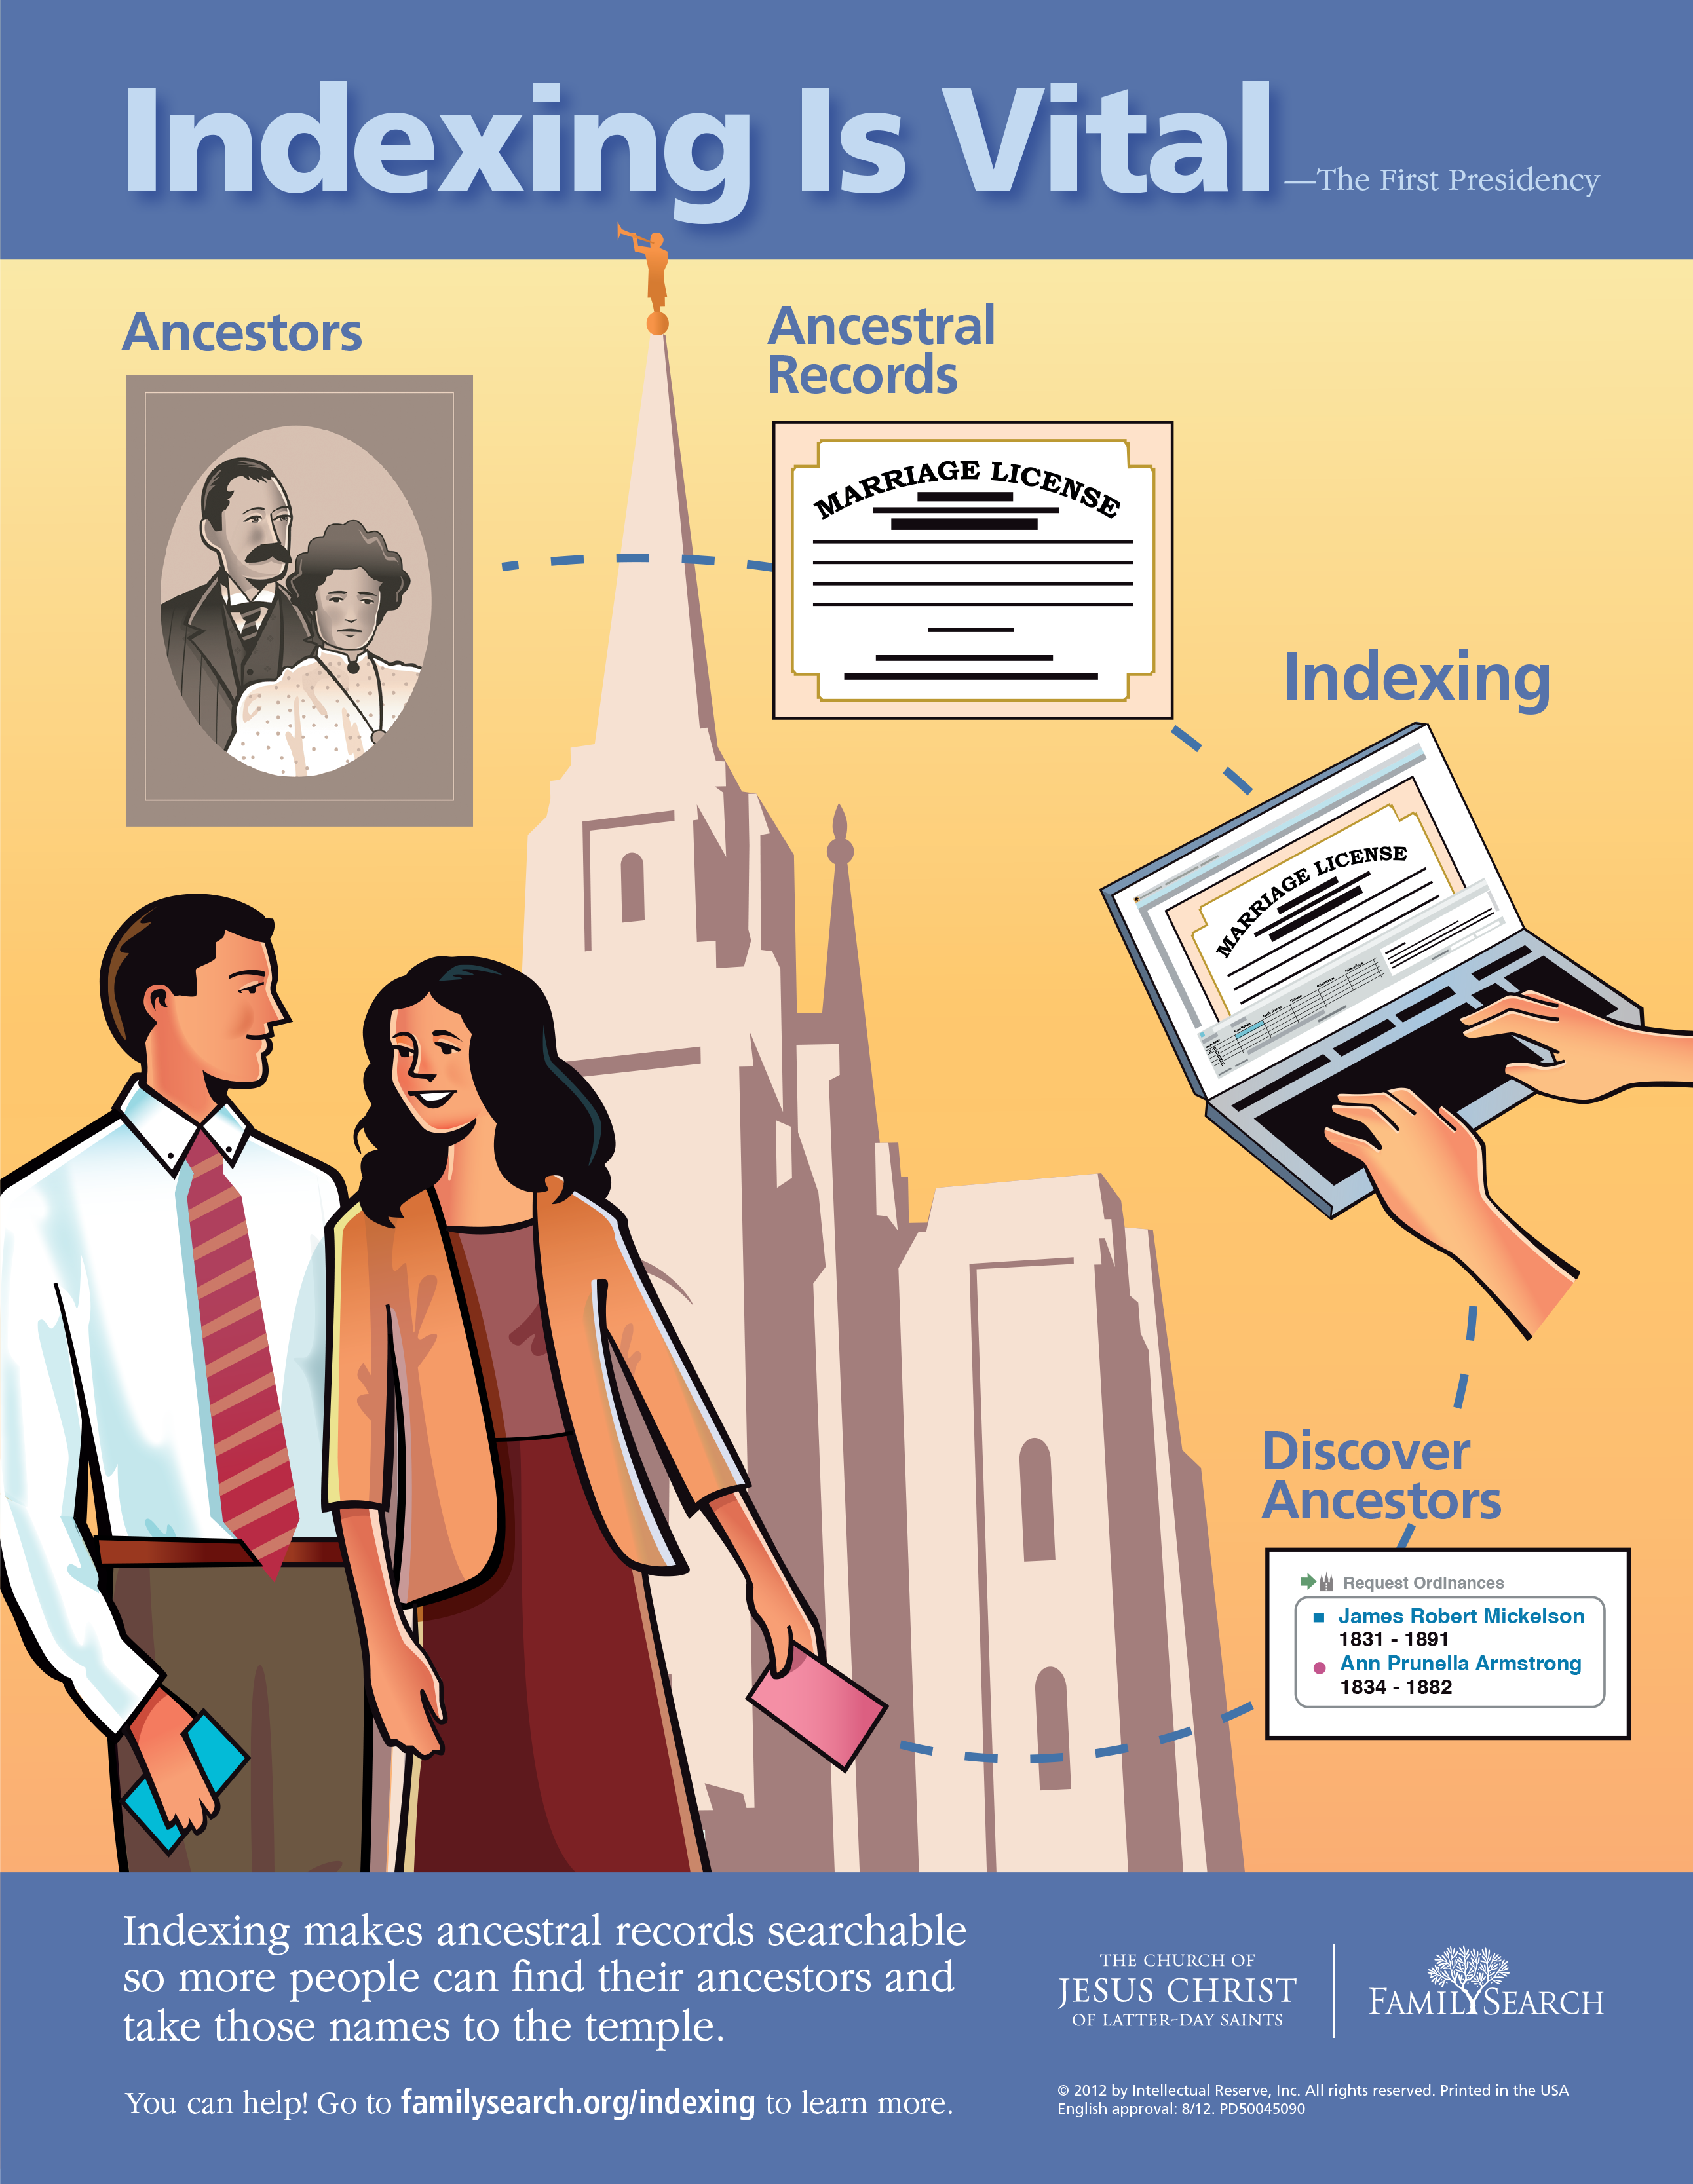 Genealogy and Indexing